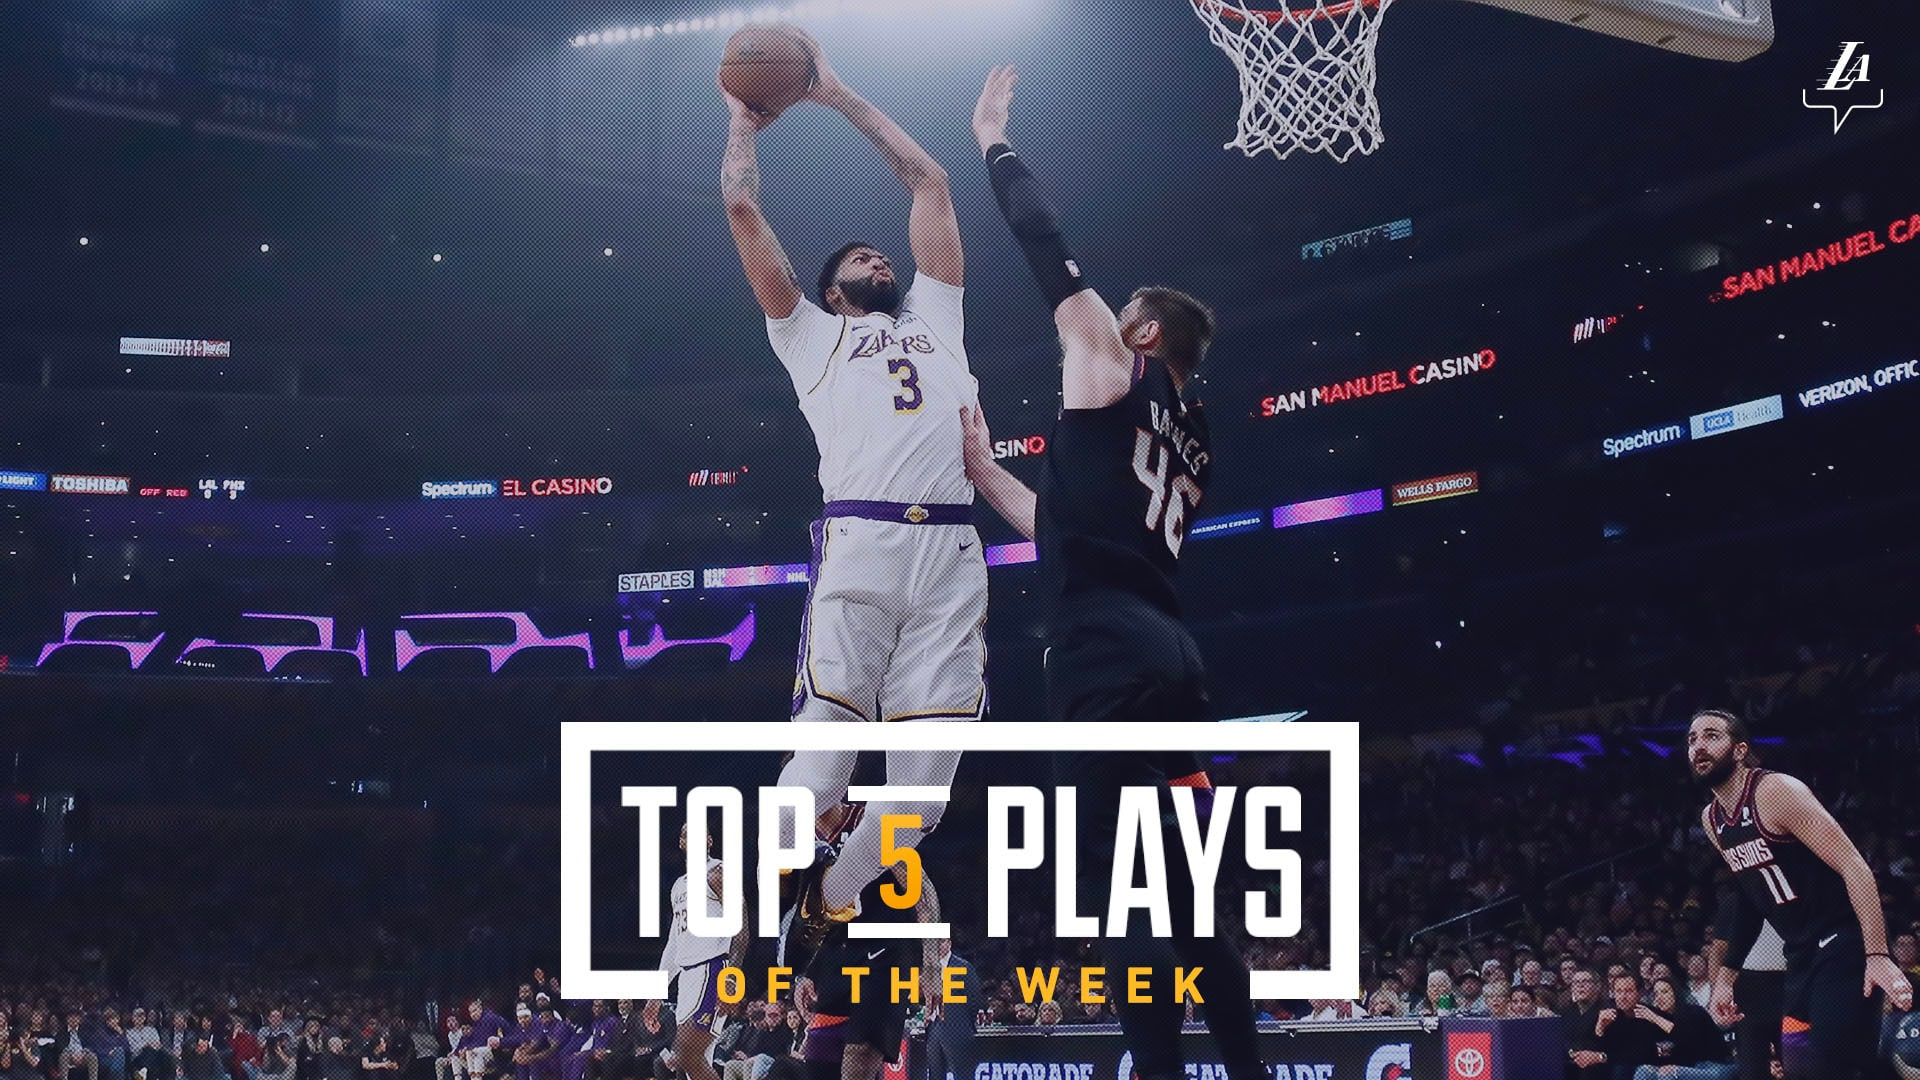 Top Plays of the Week (1/11/20)